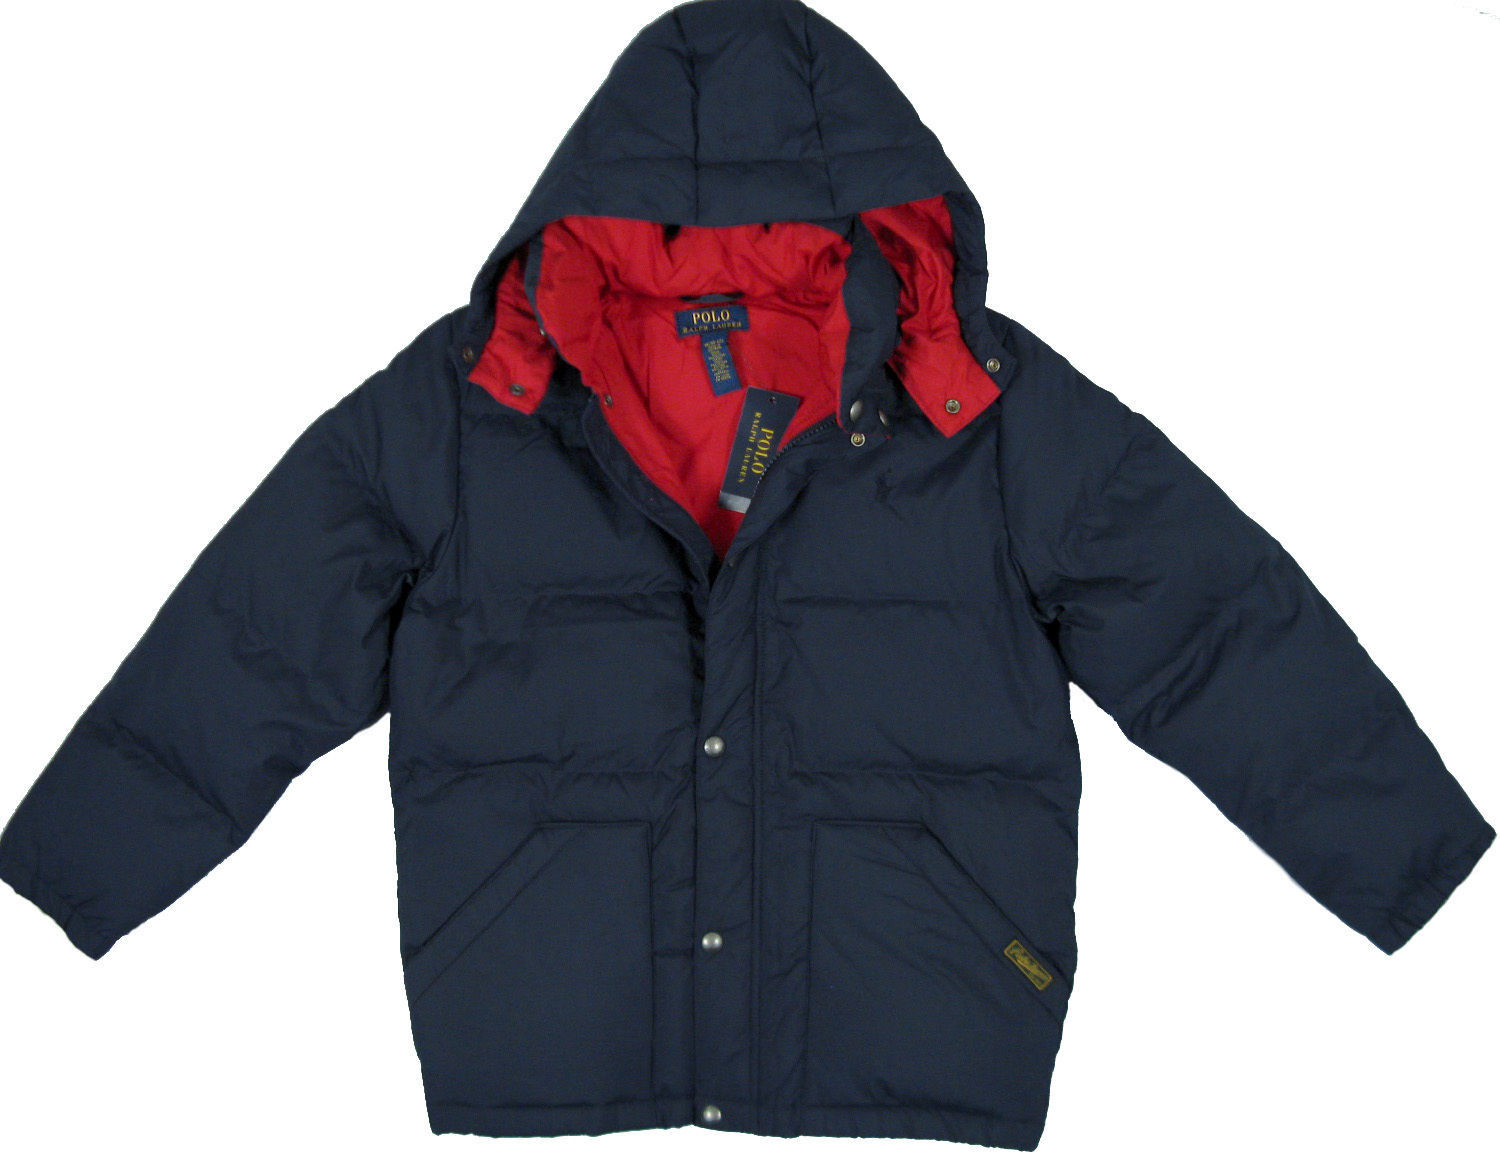 af62d5768ac9 NEW Polo Ralph Lauren Boys Down Puffer Jacket! Orange or Navy  Insulated  Hood